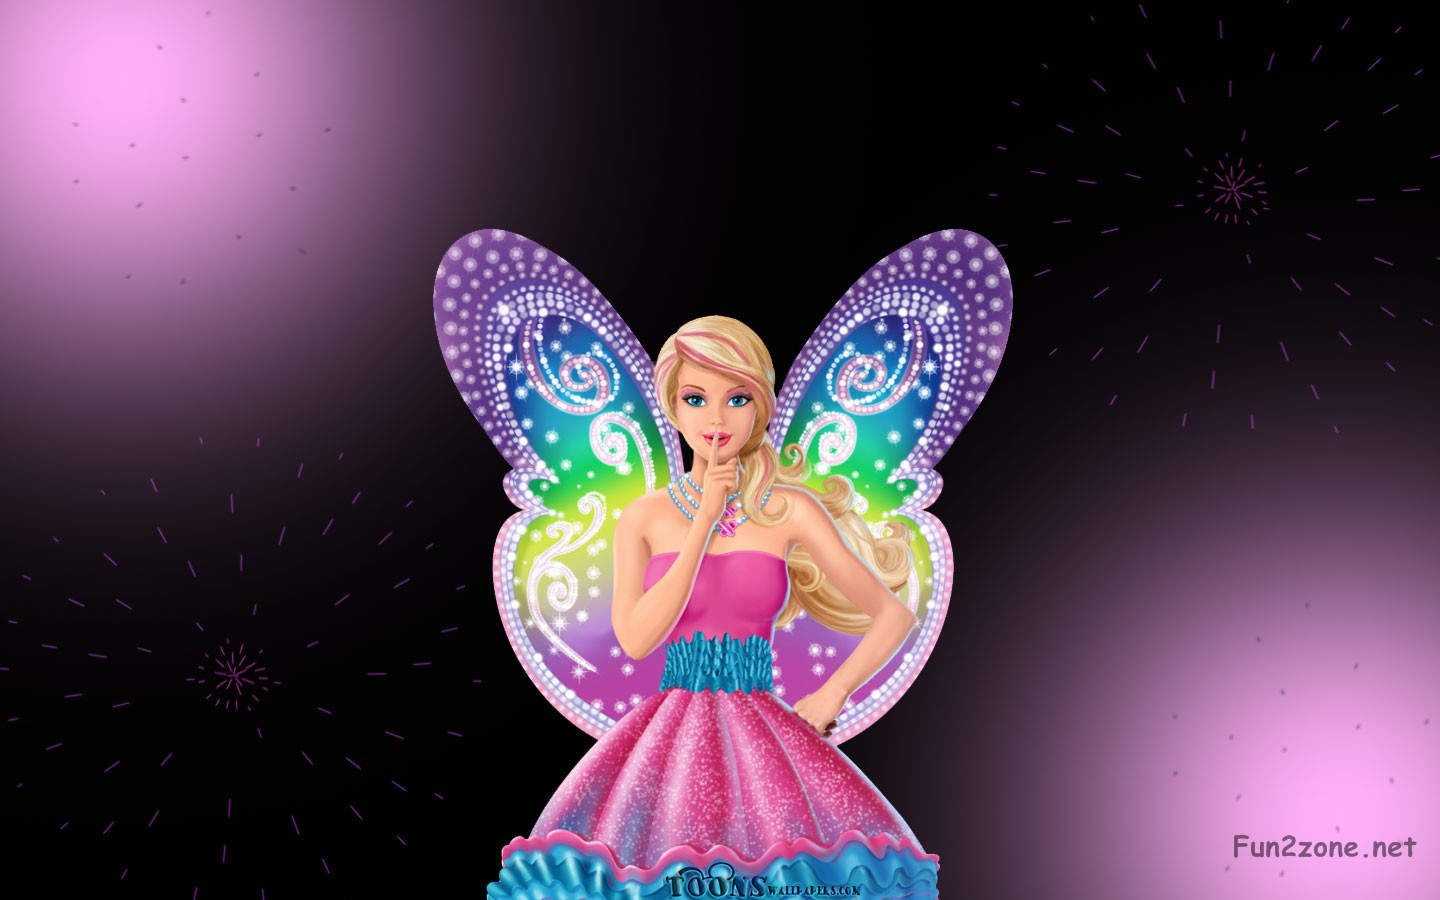 http://3.bp.blogspot.com/-HDzseElhzG0/T5K536fROlI/AAAAAAAAAJ4/7llzqIRhKgs/s1600/Barbie+Fairy+Secret+Wallpaper.jpg